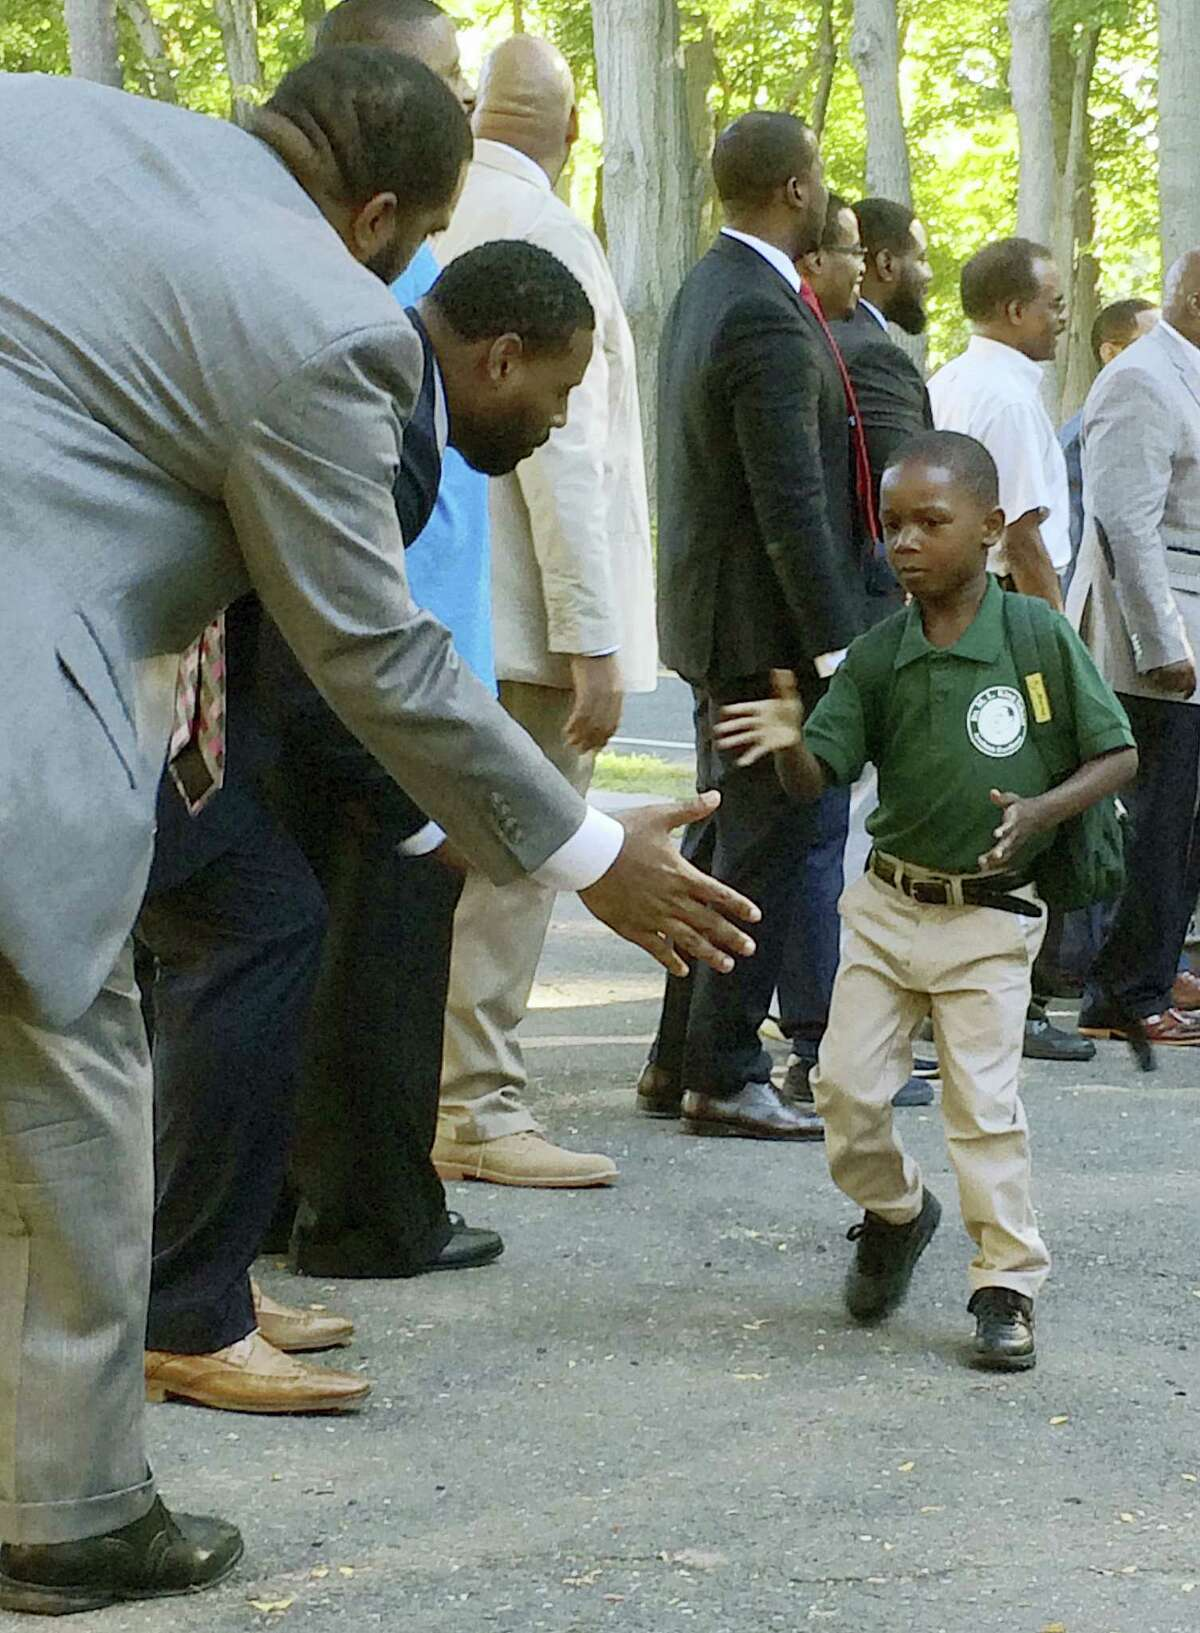 In this Aug. 30, 2016 photo, black professional men from the community greet students arriving for the first day of school at Martin Luther King Jr. Elementary School in Hartford, Conn. Similar welcome ceremonies have been staged for students from minority communities in cities around the country including Atlanta, Boston and Seattle.